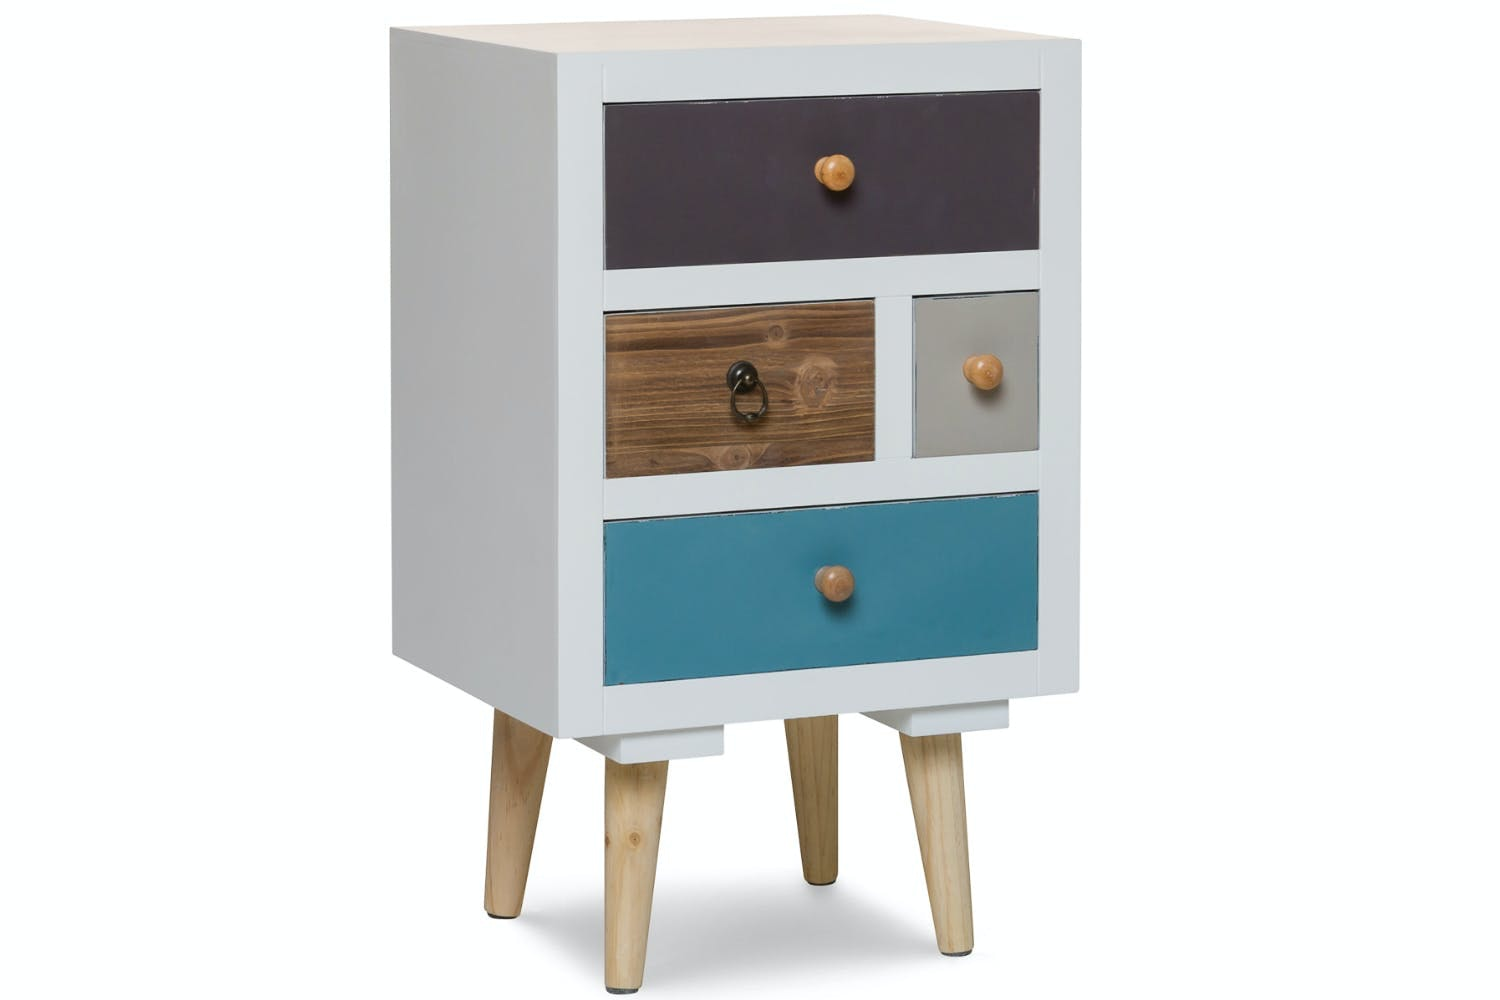 Thais 4 Drawer Bedside Table